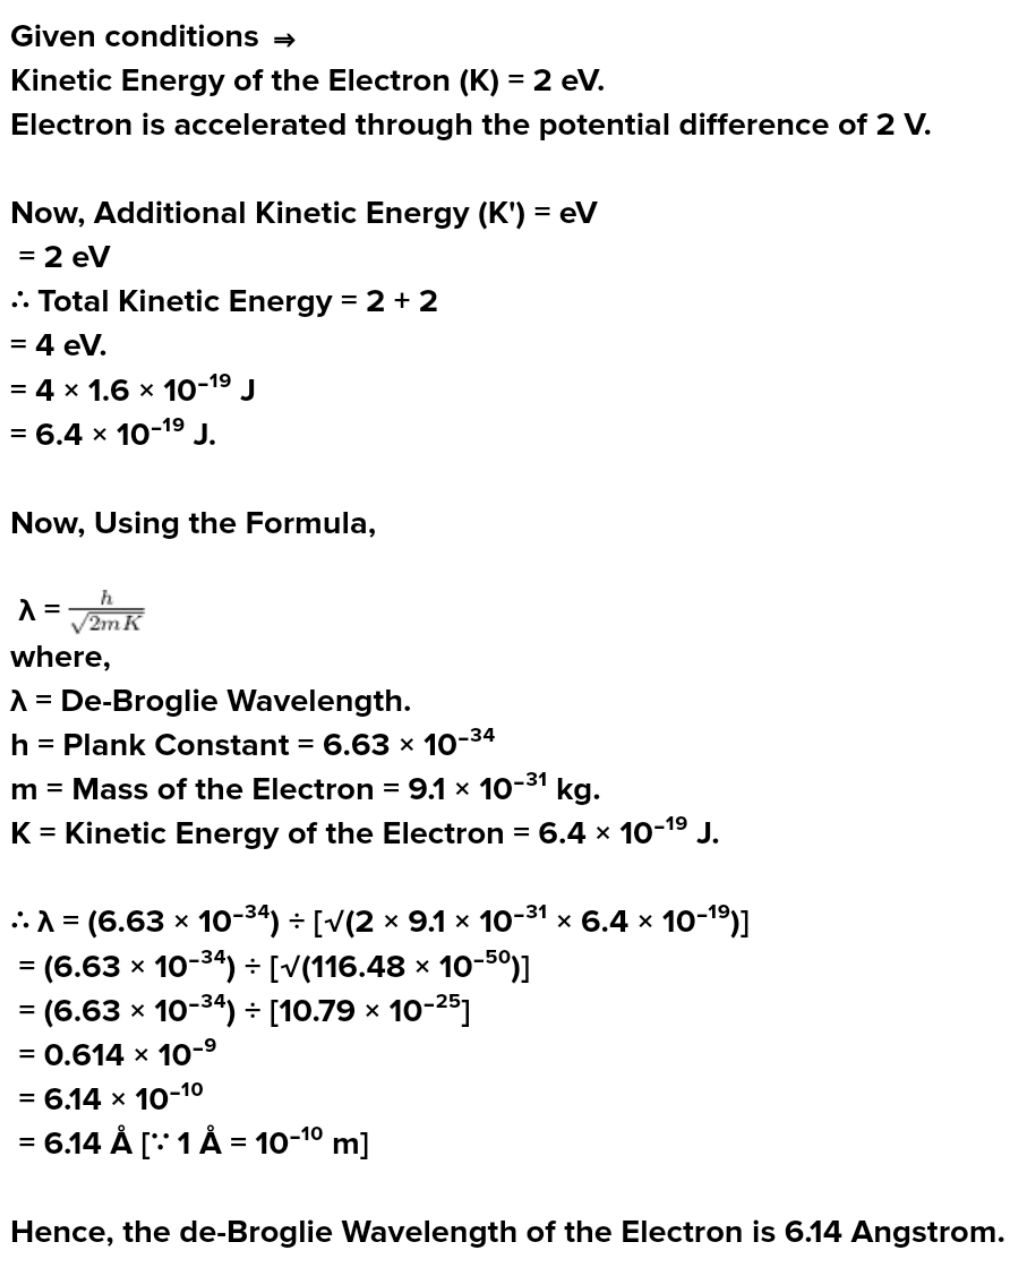 If an electron having kinetic energy 2eV is accelerated through the potential difference of 2 Volt. Then calculate the wavelength associated with the electron.